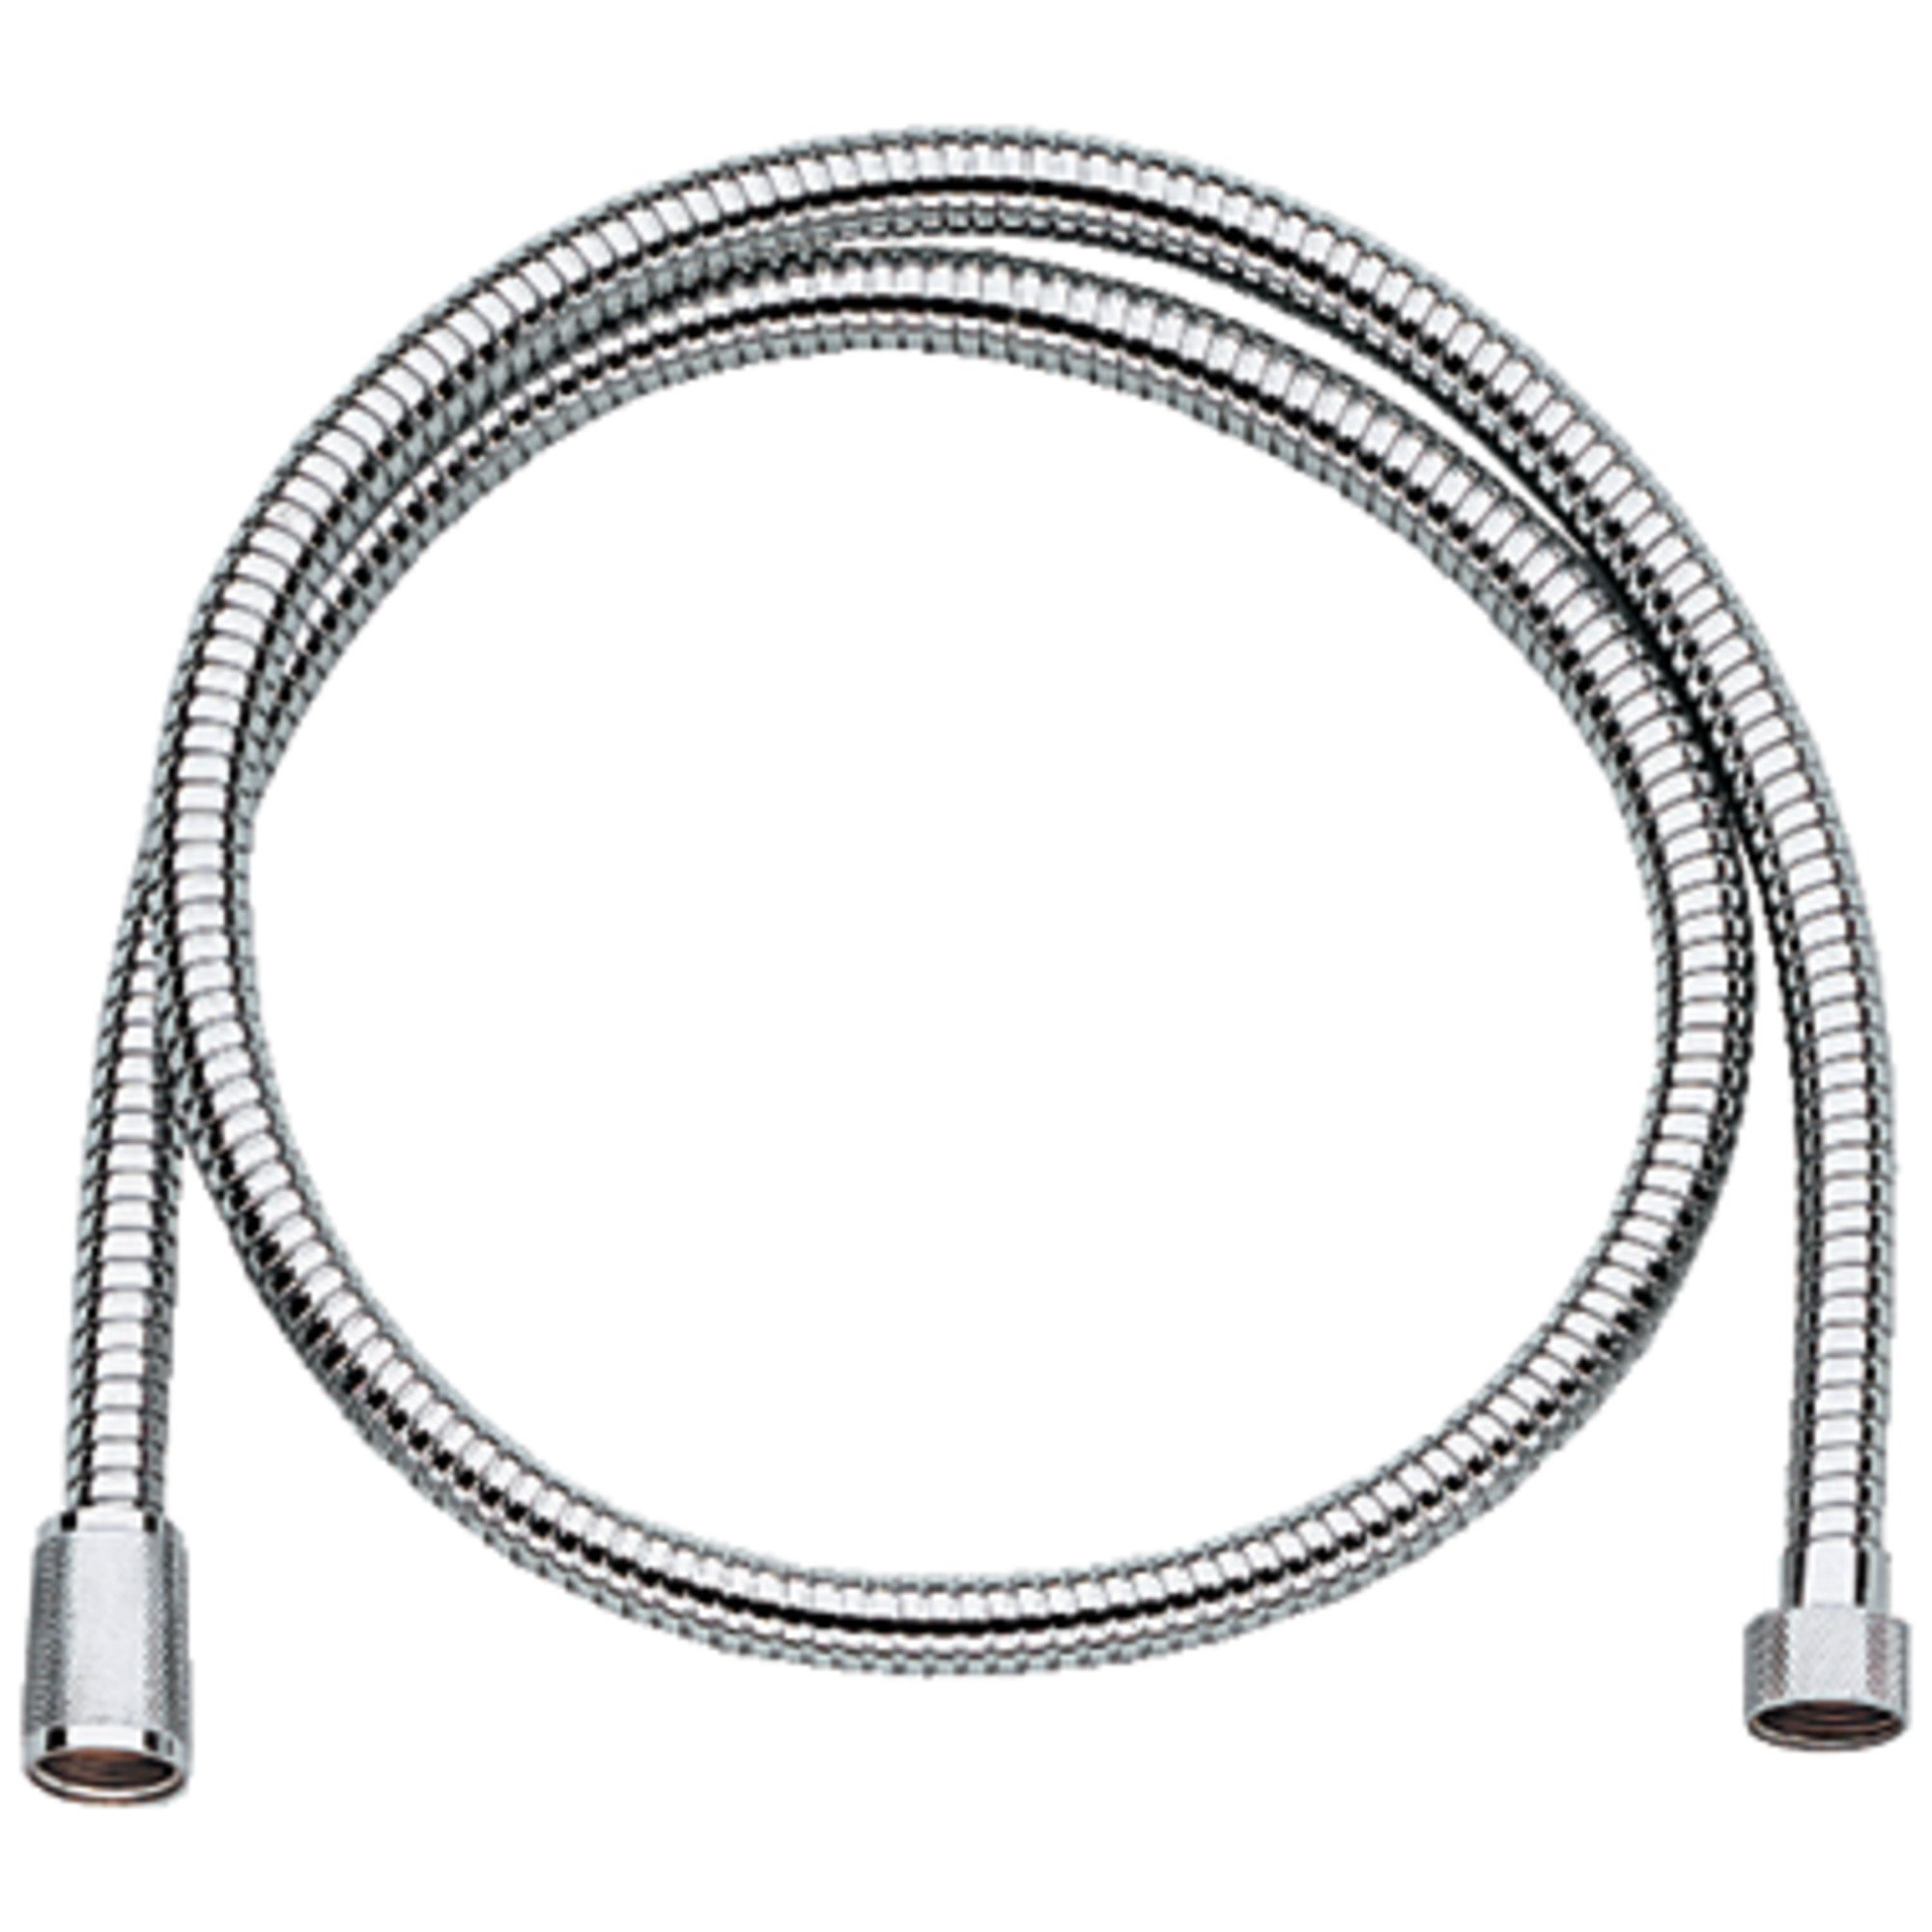 GROHE 28143000 Relexa Longlife Metallic Hose, Starlight Chrome